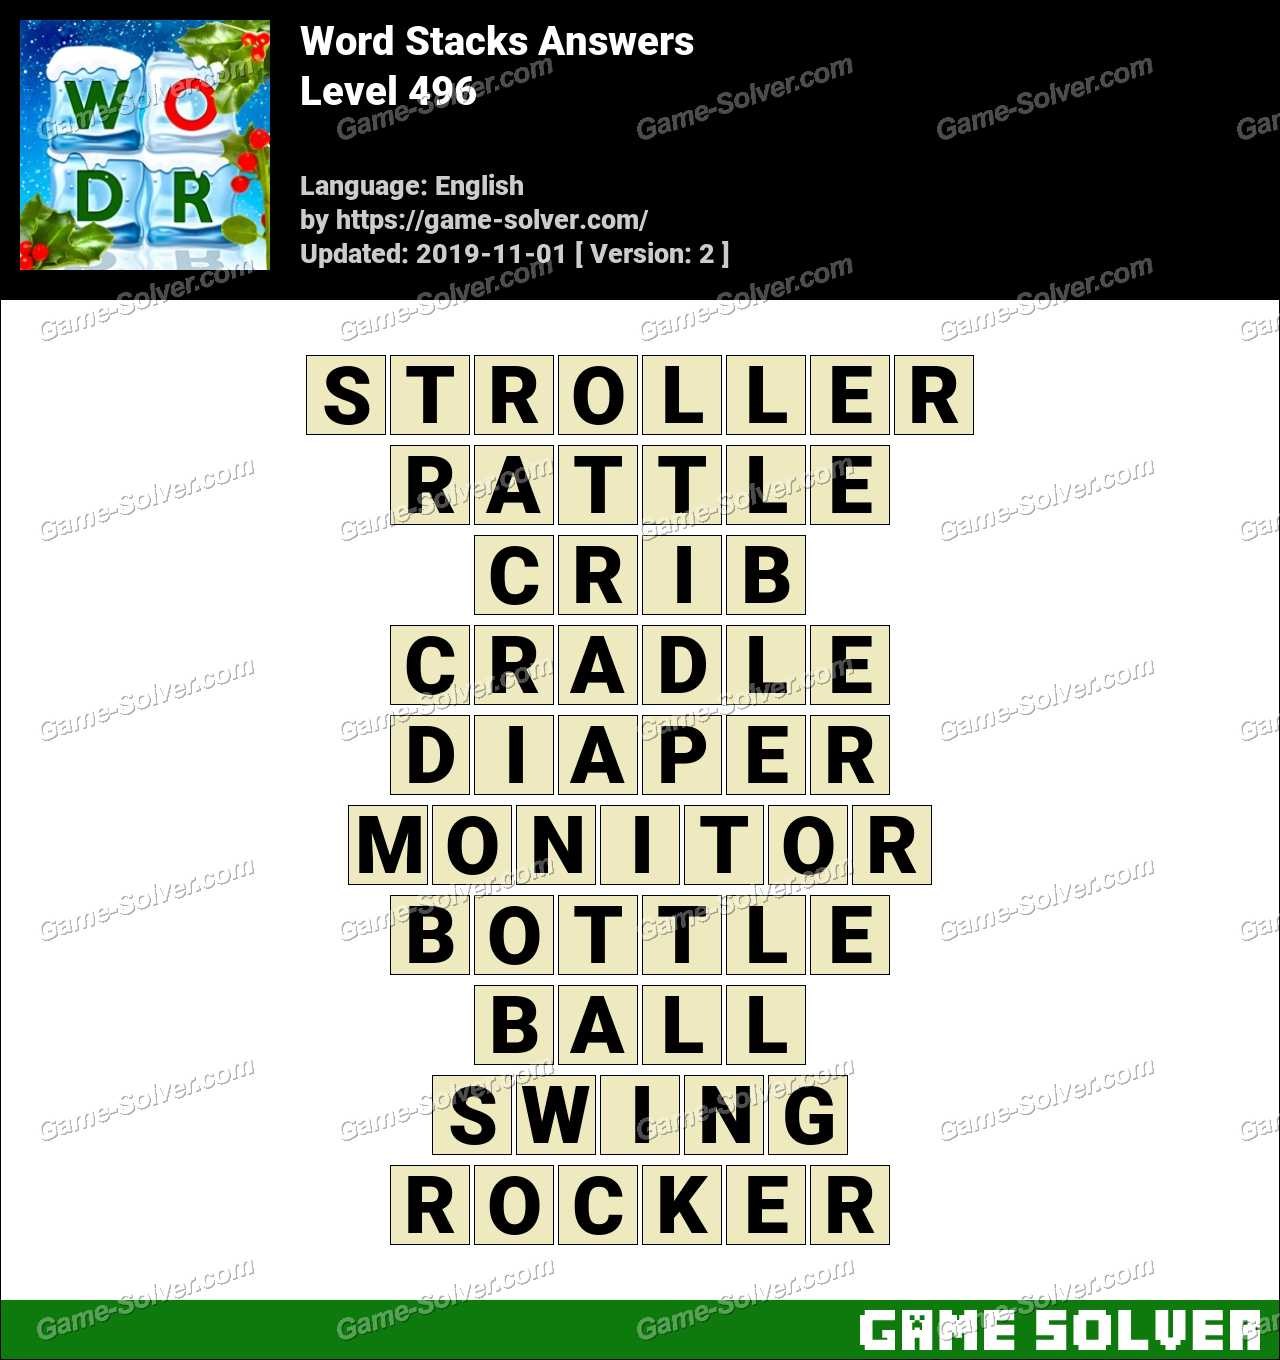 Word Stacks Level 496 Answers